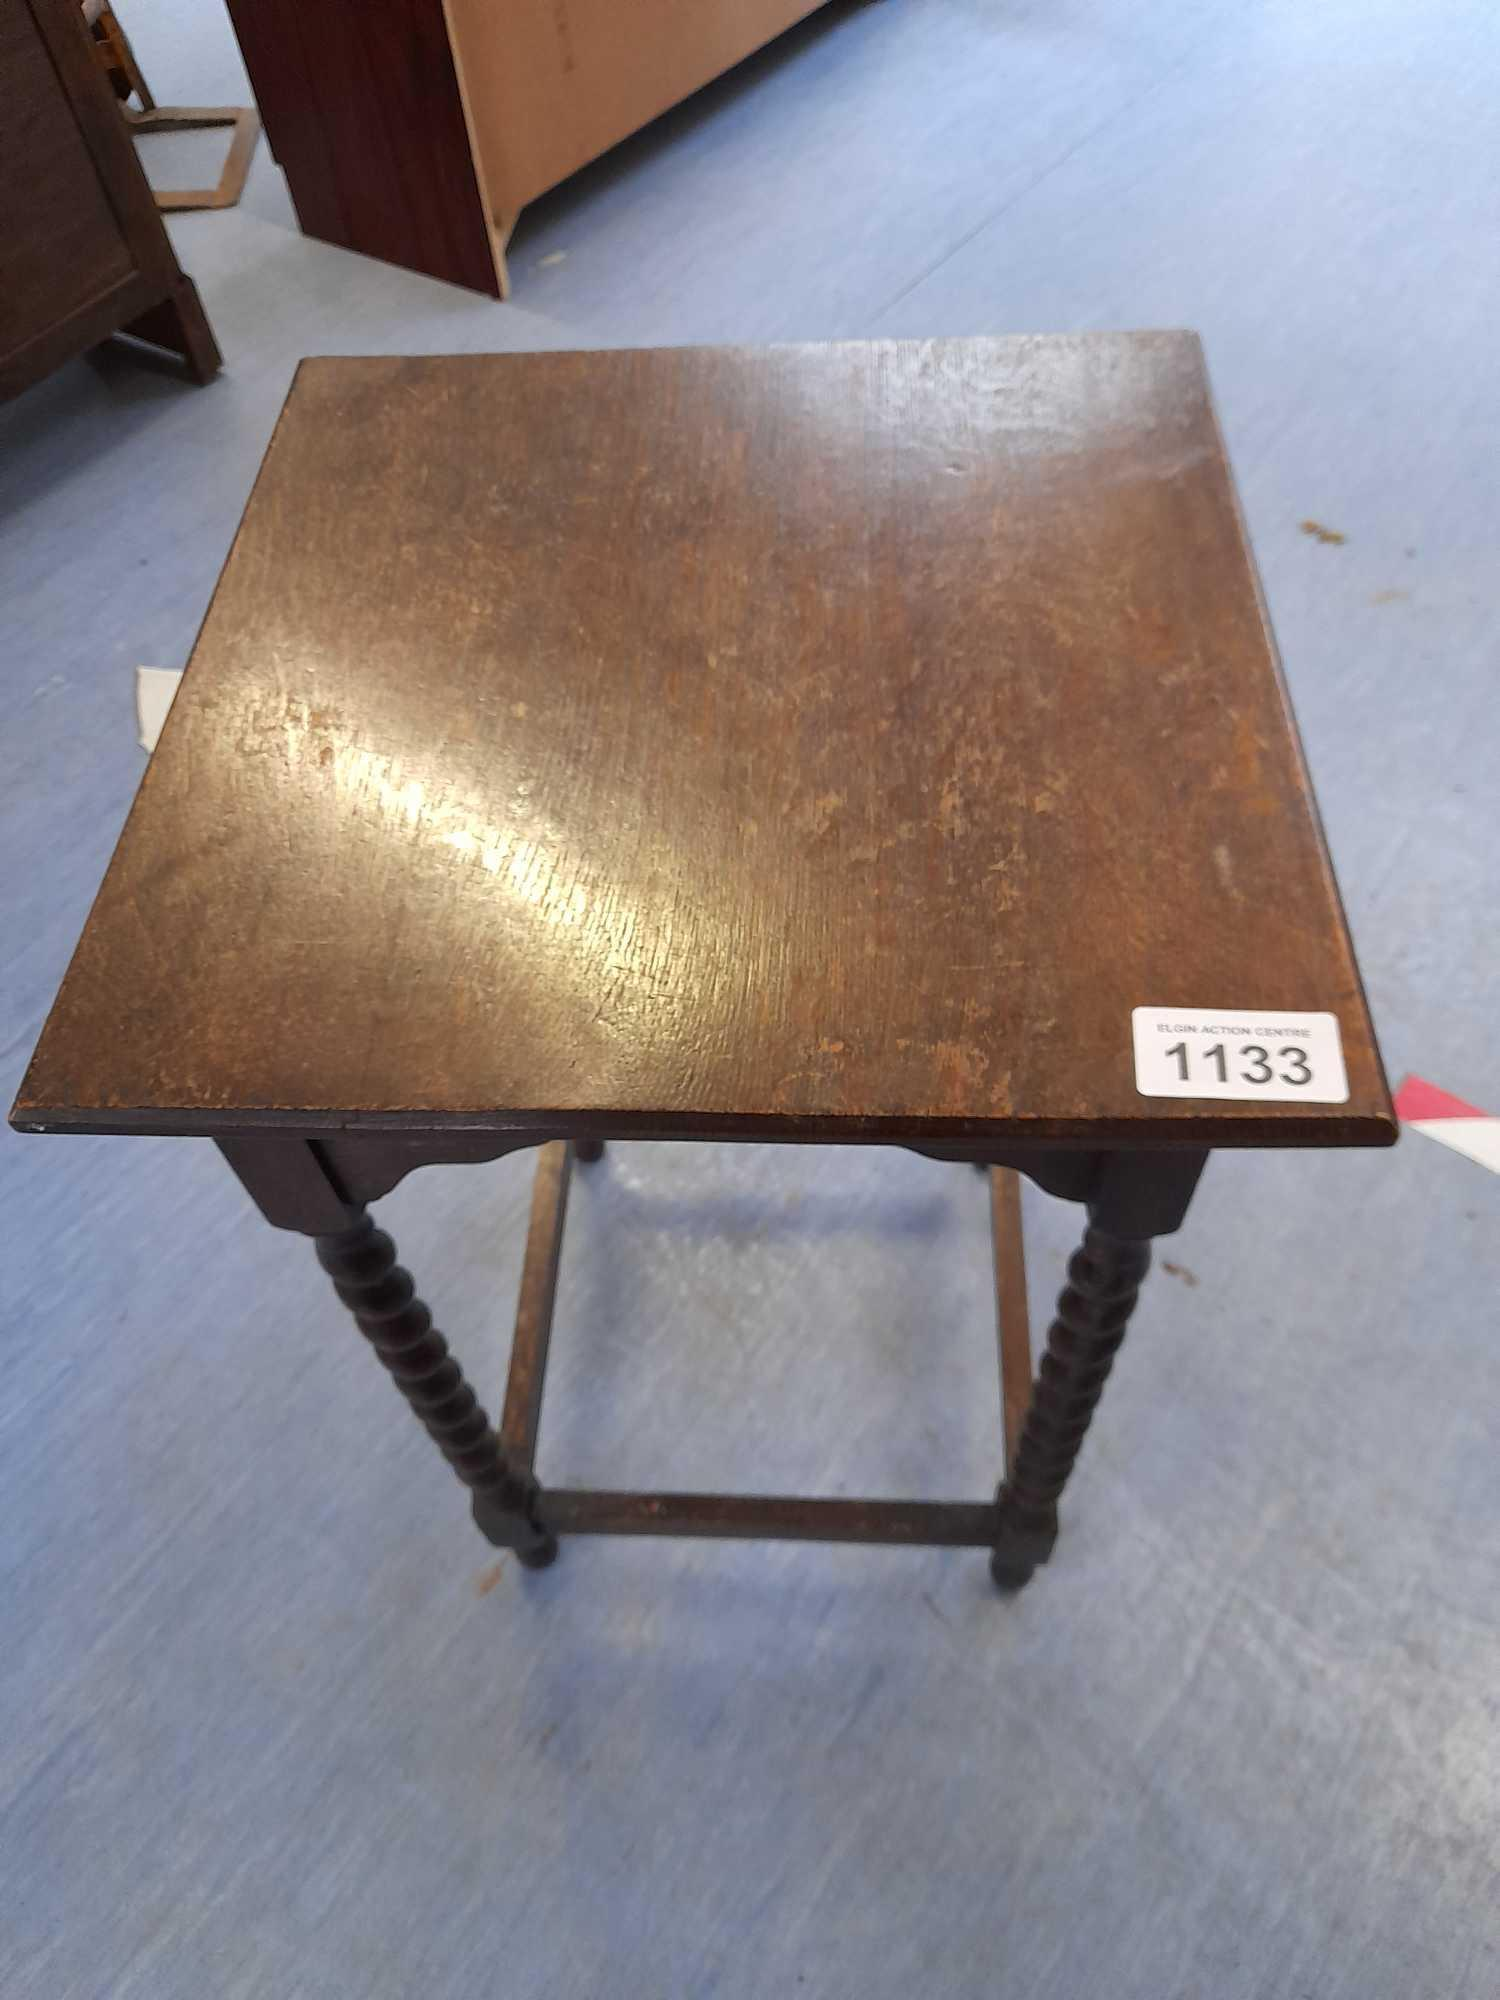 BARLEY TWIST SQUARE TOPPED TABLE - Image 2 of 2